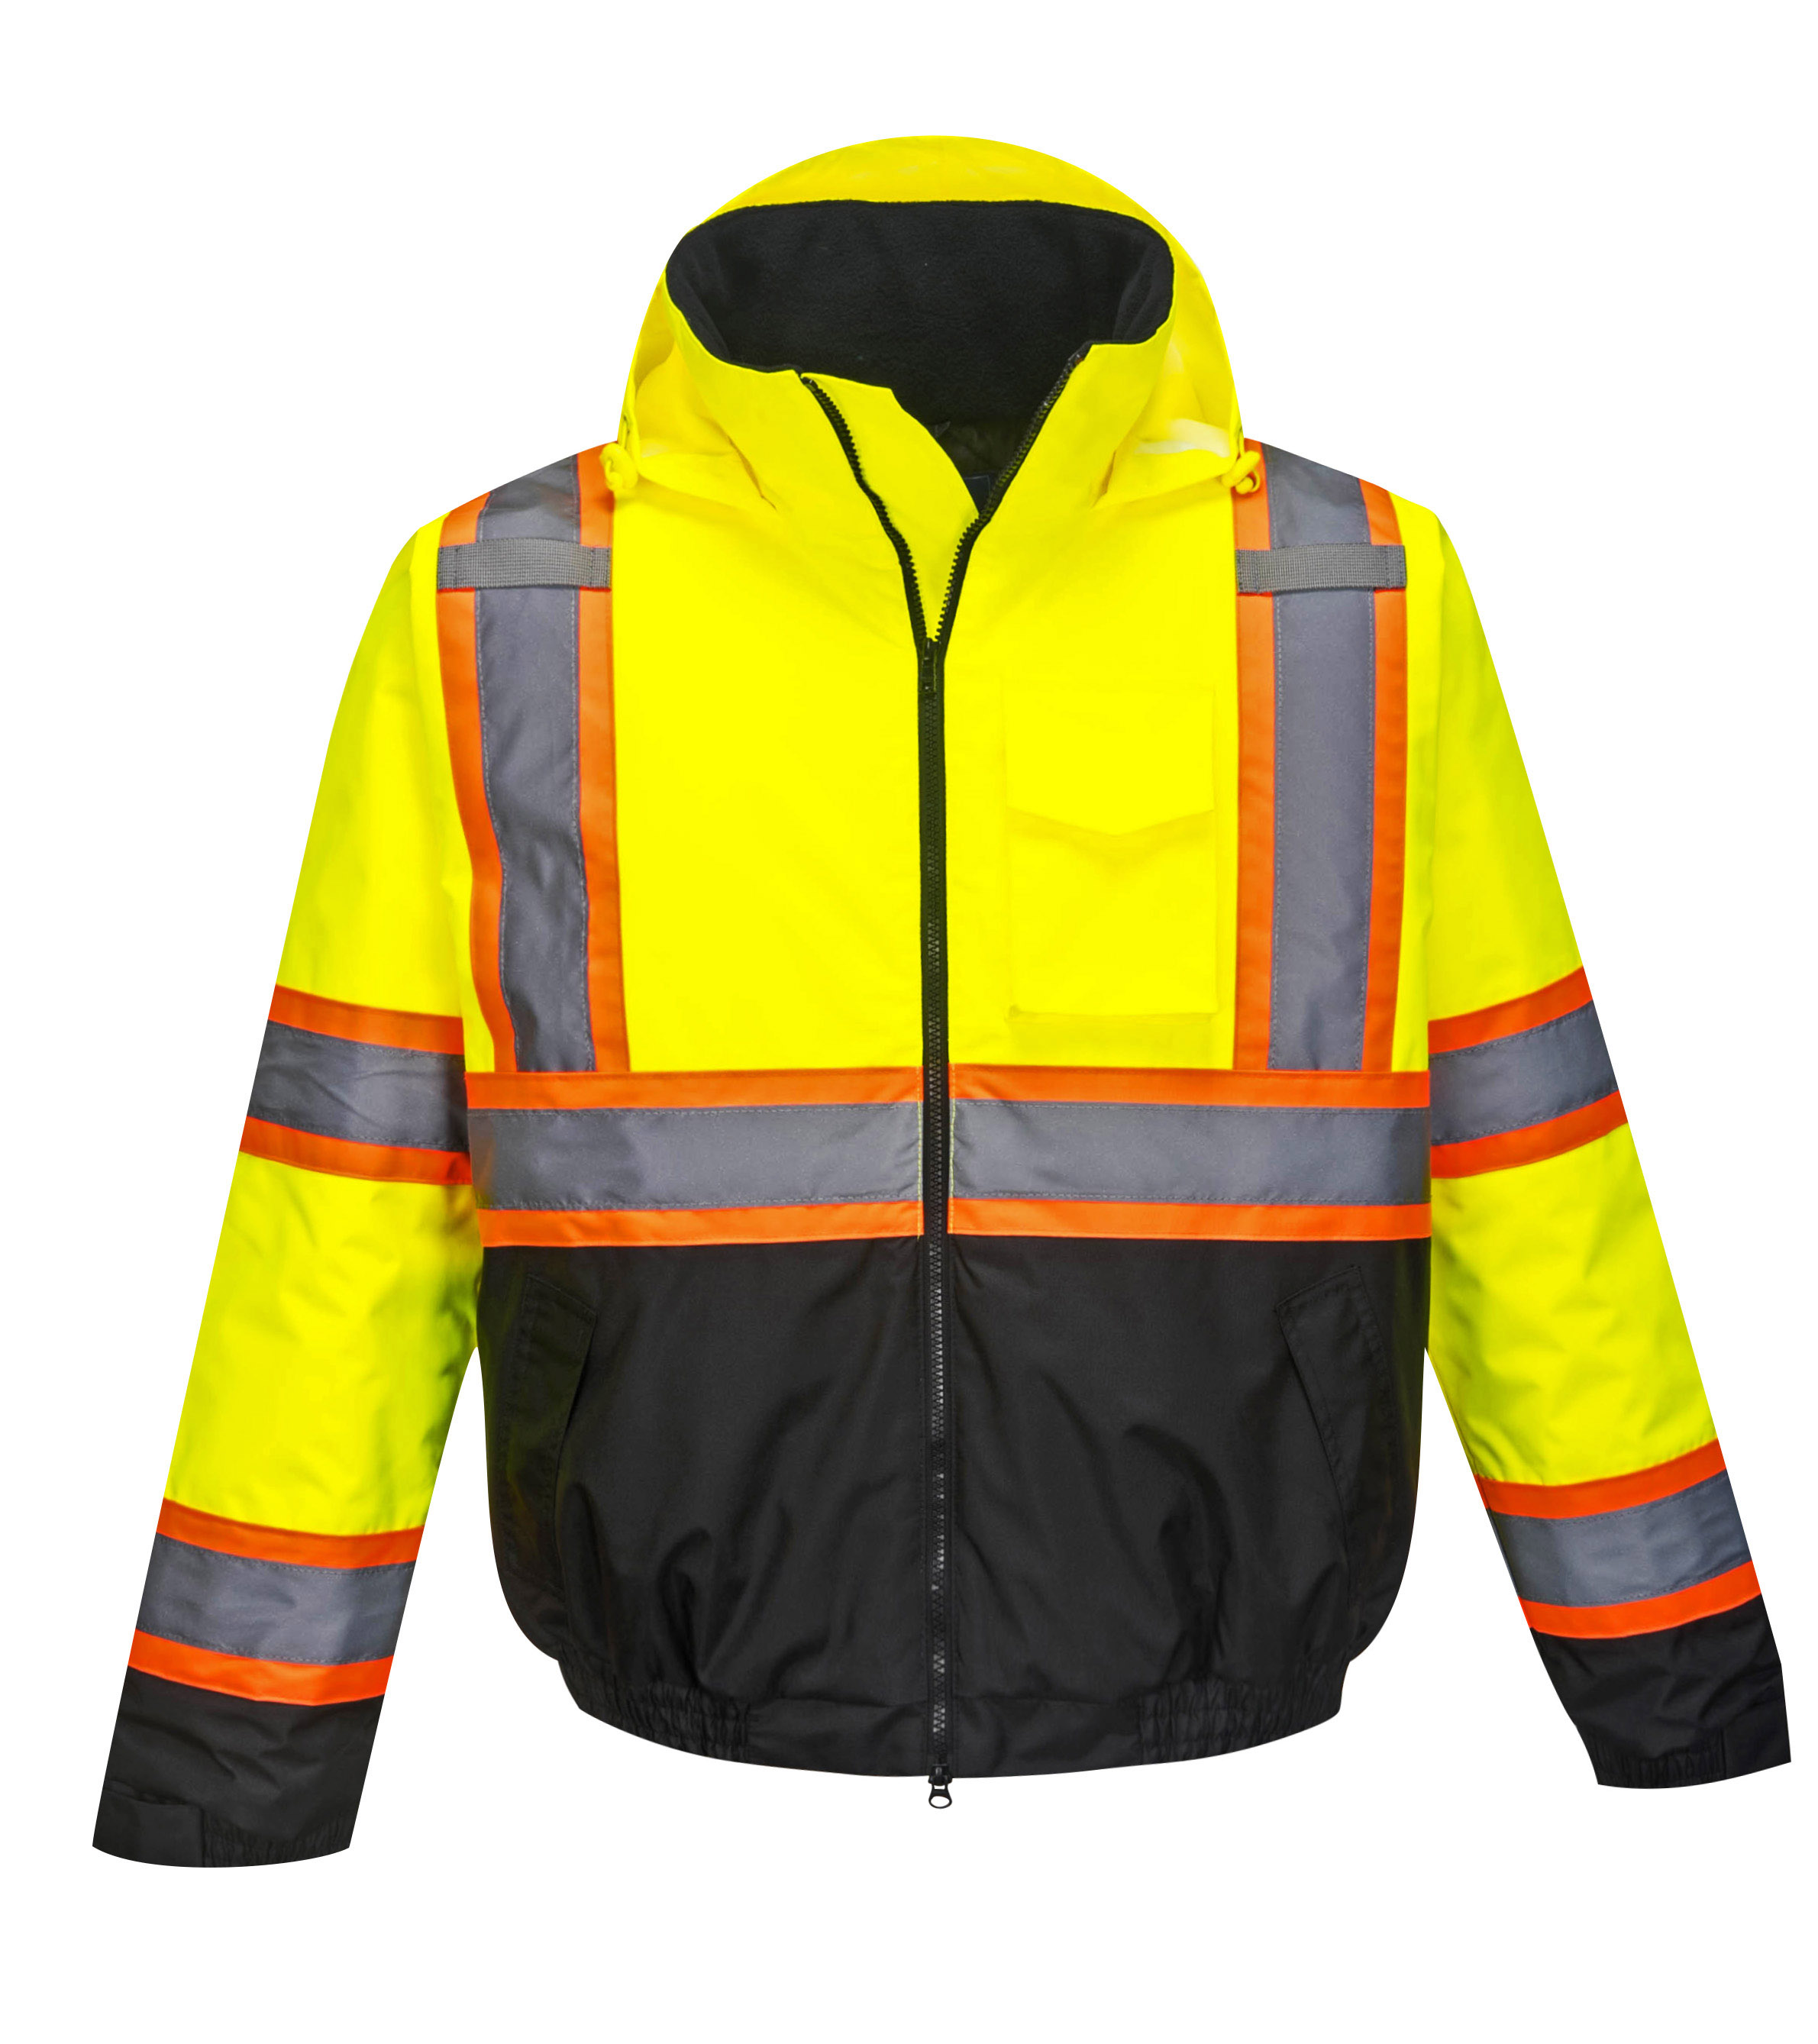 Portwest US368 High Visibility Two-tone Safety Jackets w  Removable Fleece becf8fc09de7